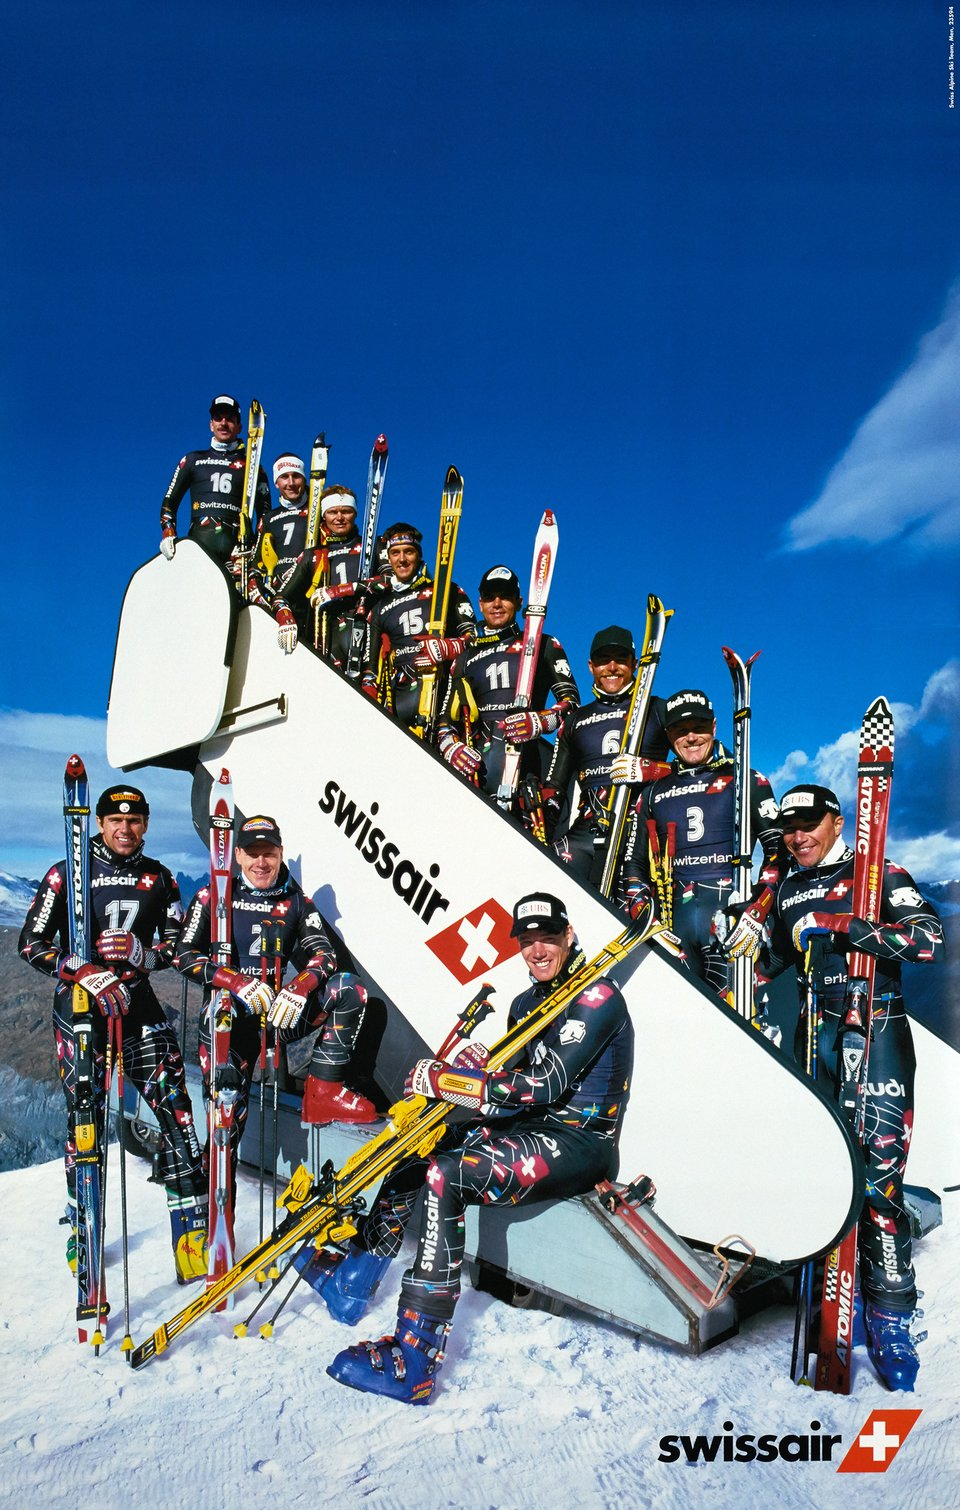 Swissair, Swiss Alpin Ski Team, Men – Vintage poster – ANONYME – 1994